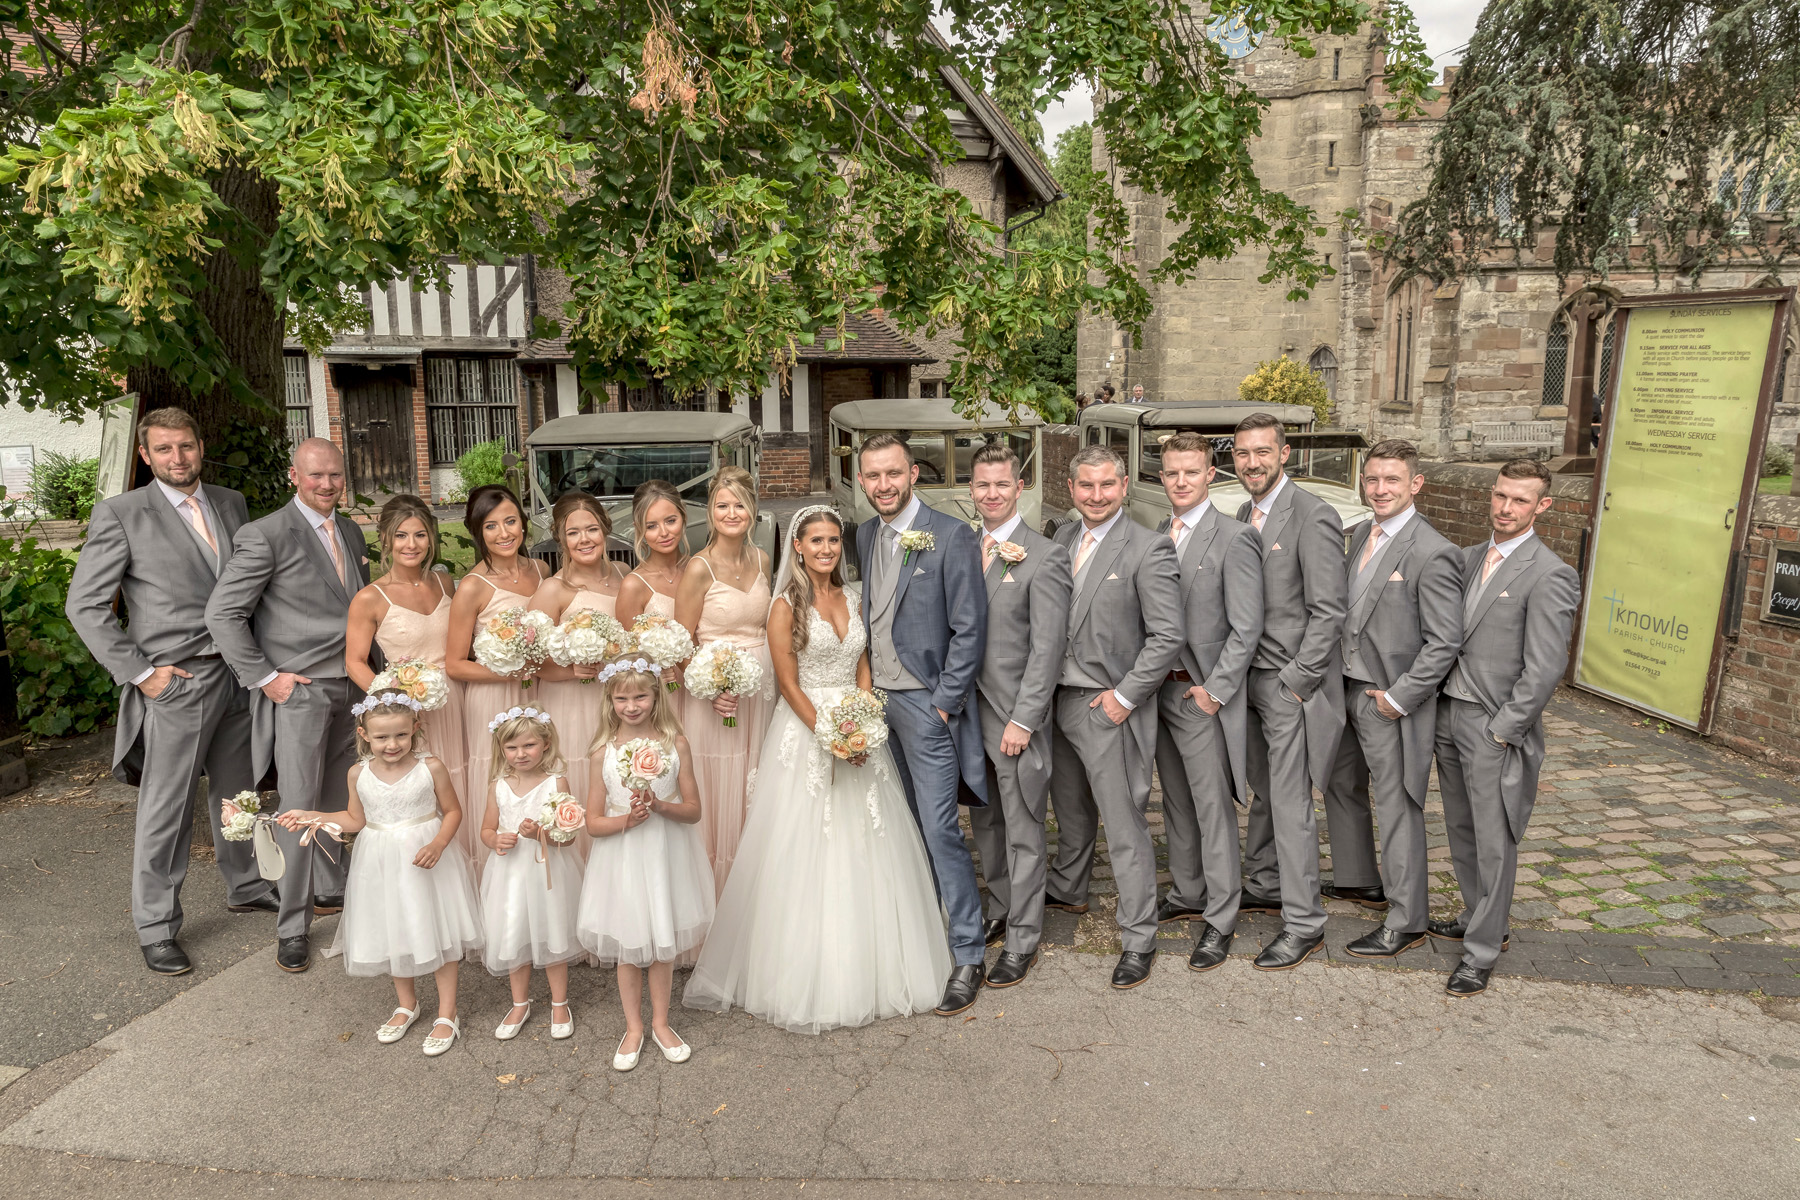 Bridal party in front of vintage cars at Knowle Church